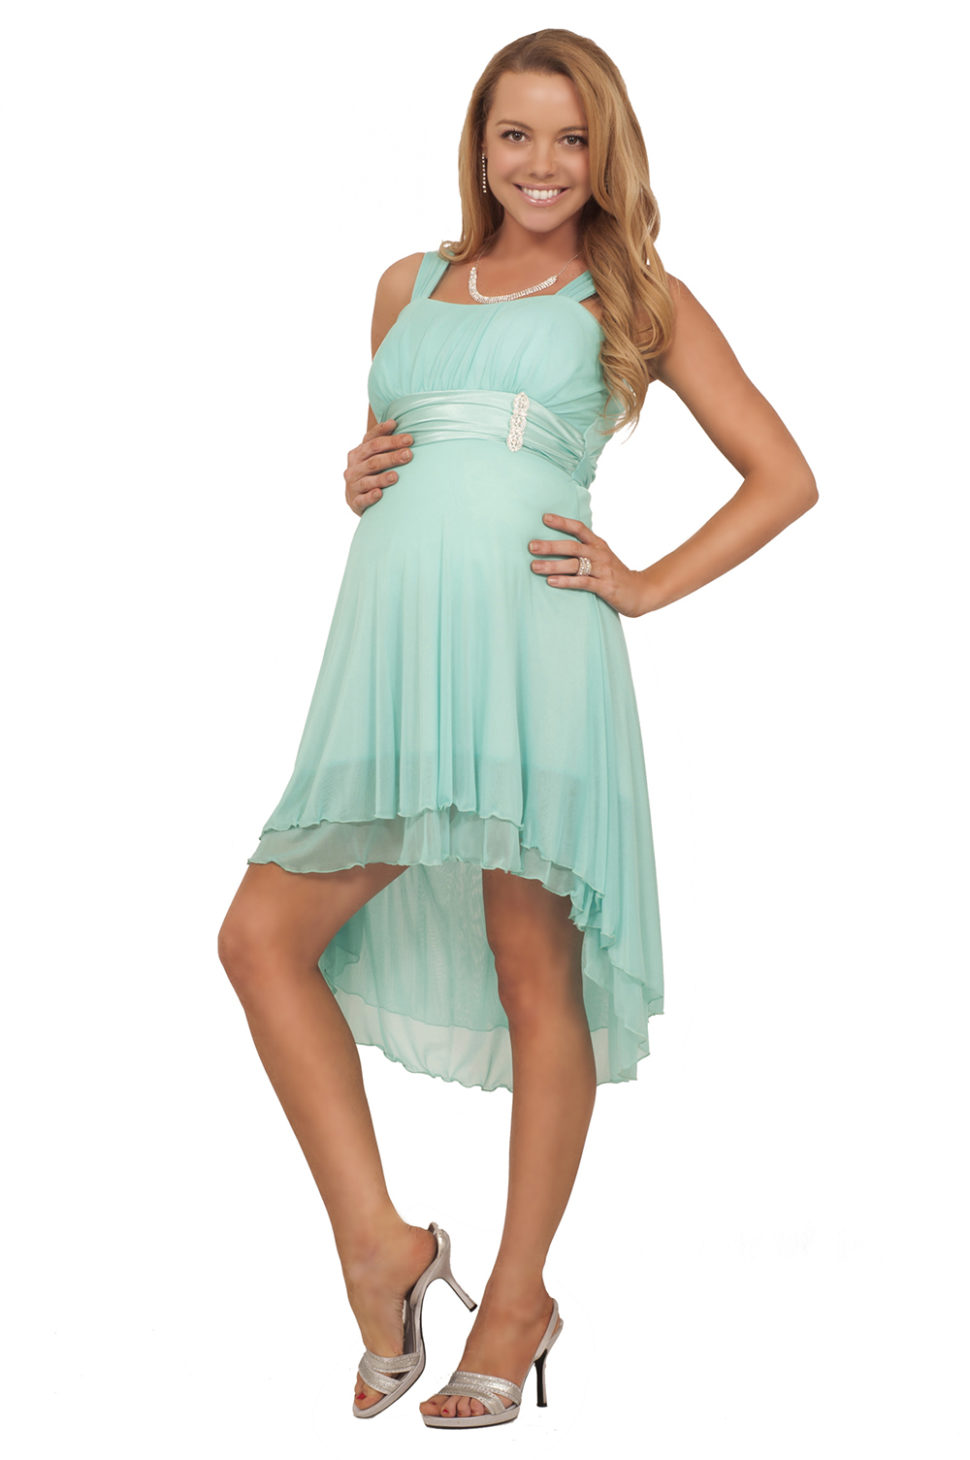 Medium Size of Baby Shower:stylish Maternity Dresses For Baby Shower Ba Shower Outfits For Ba Shower Cute Maternity Dress Ba Regarding Practical Baby Shower Gifts With Baby Shower Event Planner Plus Baby Shower Theme Ideas Together With Baby Shower Door Prizes As Well As Baby Shower Crafts